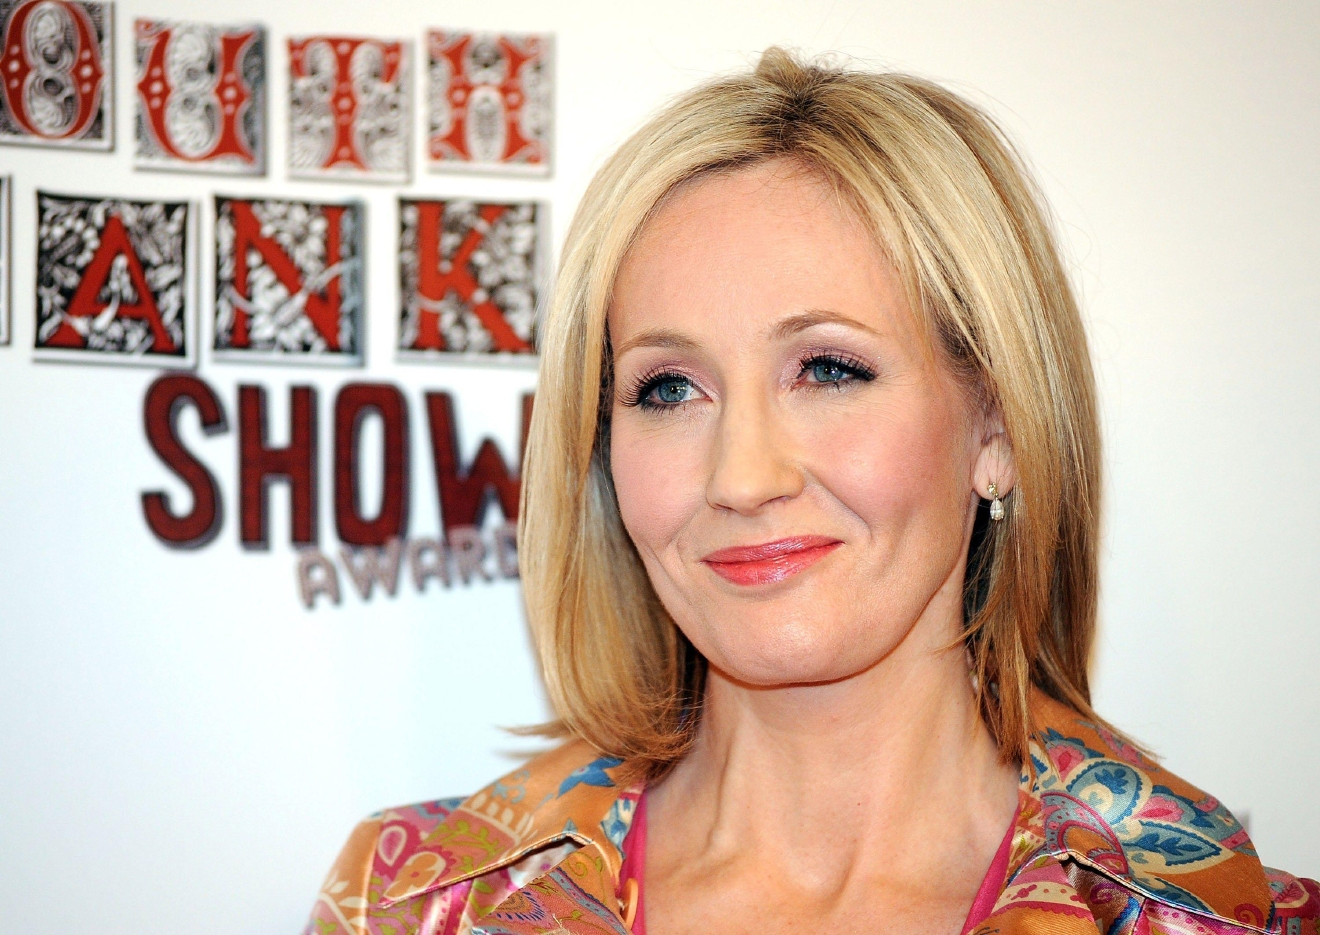 J.K. Rowling The South Bank Show Awards at The Dorchester Hotel - Inside London, England - 29.01.08  Featuring: J.K. Rowling Where: London, United Kingdom When: 29 Jan 2008 Credit: Daniel Deme / WENN